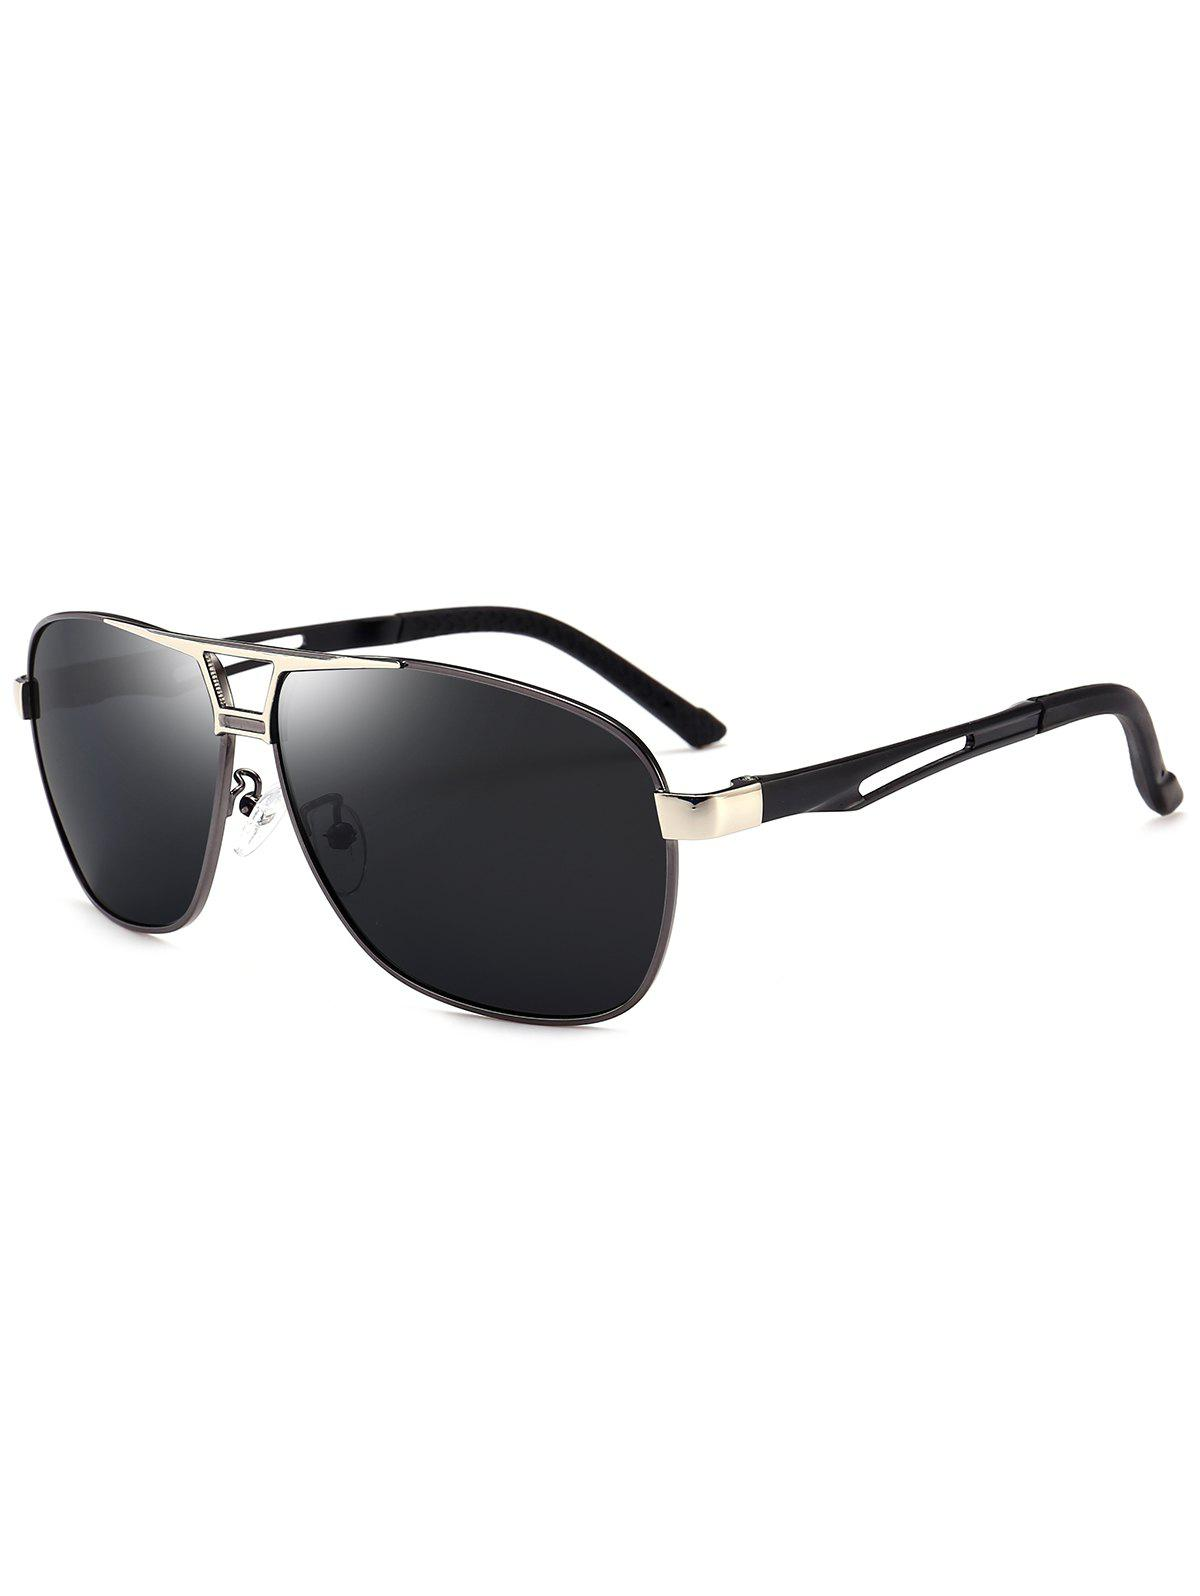 Metallic Square Pilot Sunglasses - GUN GREY FRAME/GREY LENS